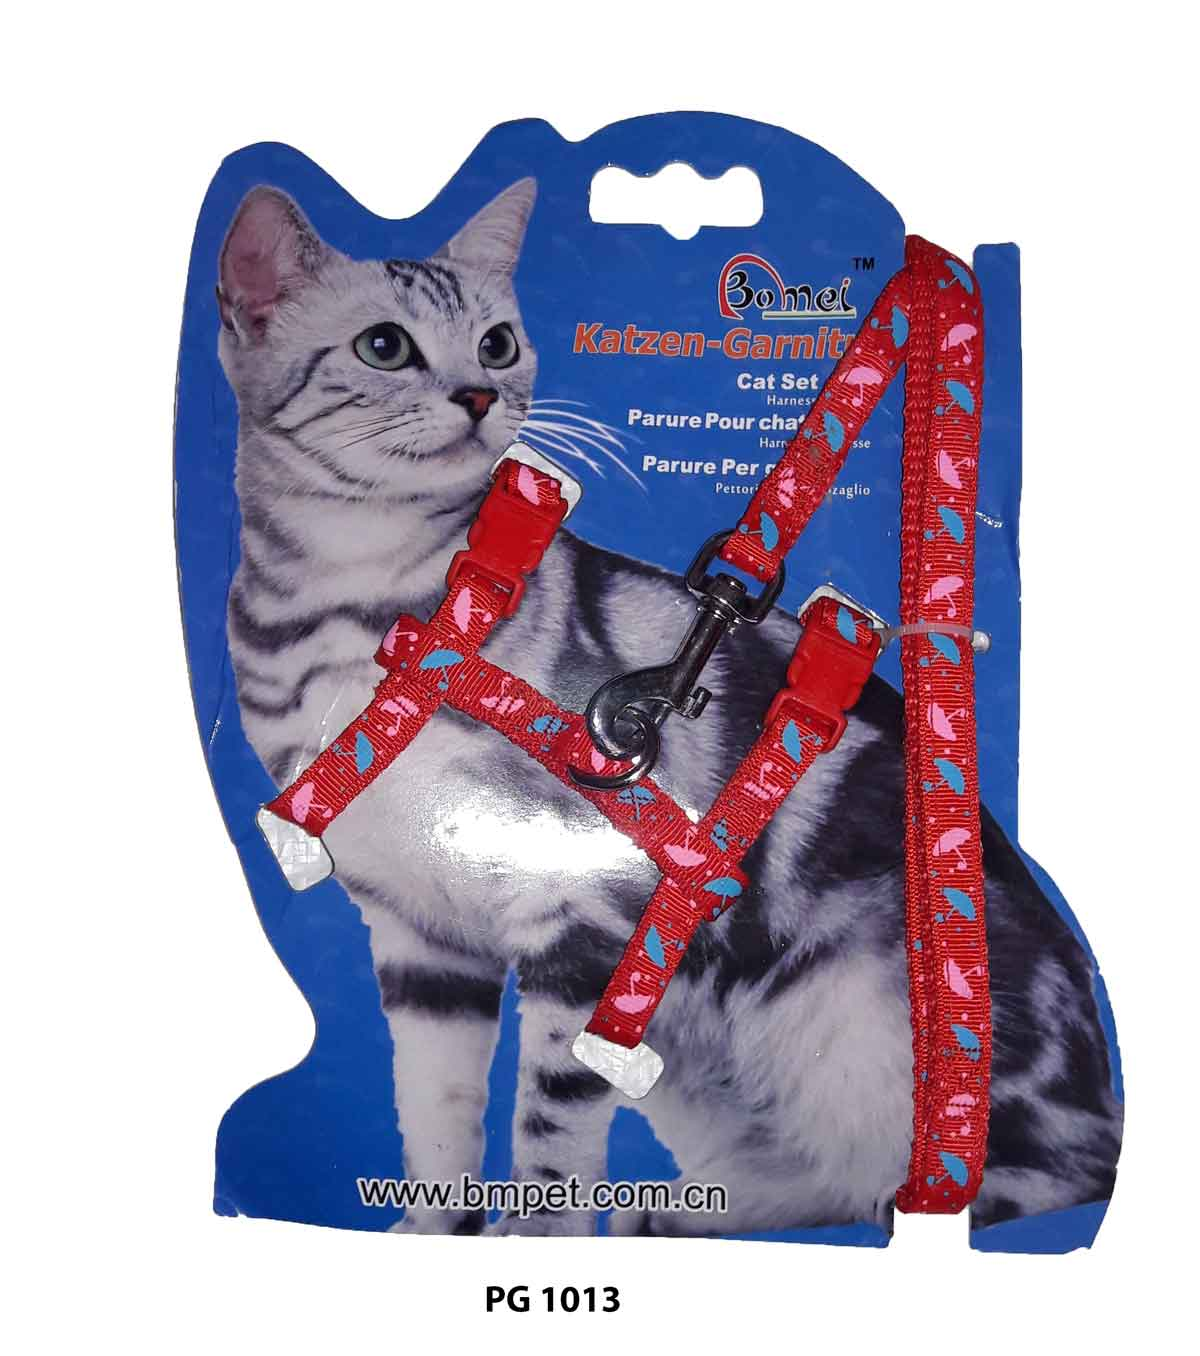 Buy Cat Harness And Leash,Cat leash,Pet Harness,Pet Leash in low price online at Petindiaonline